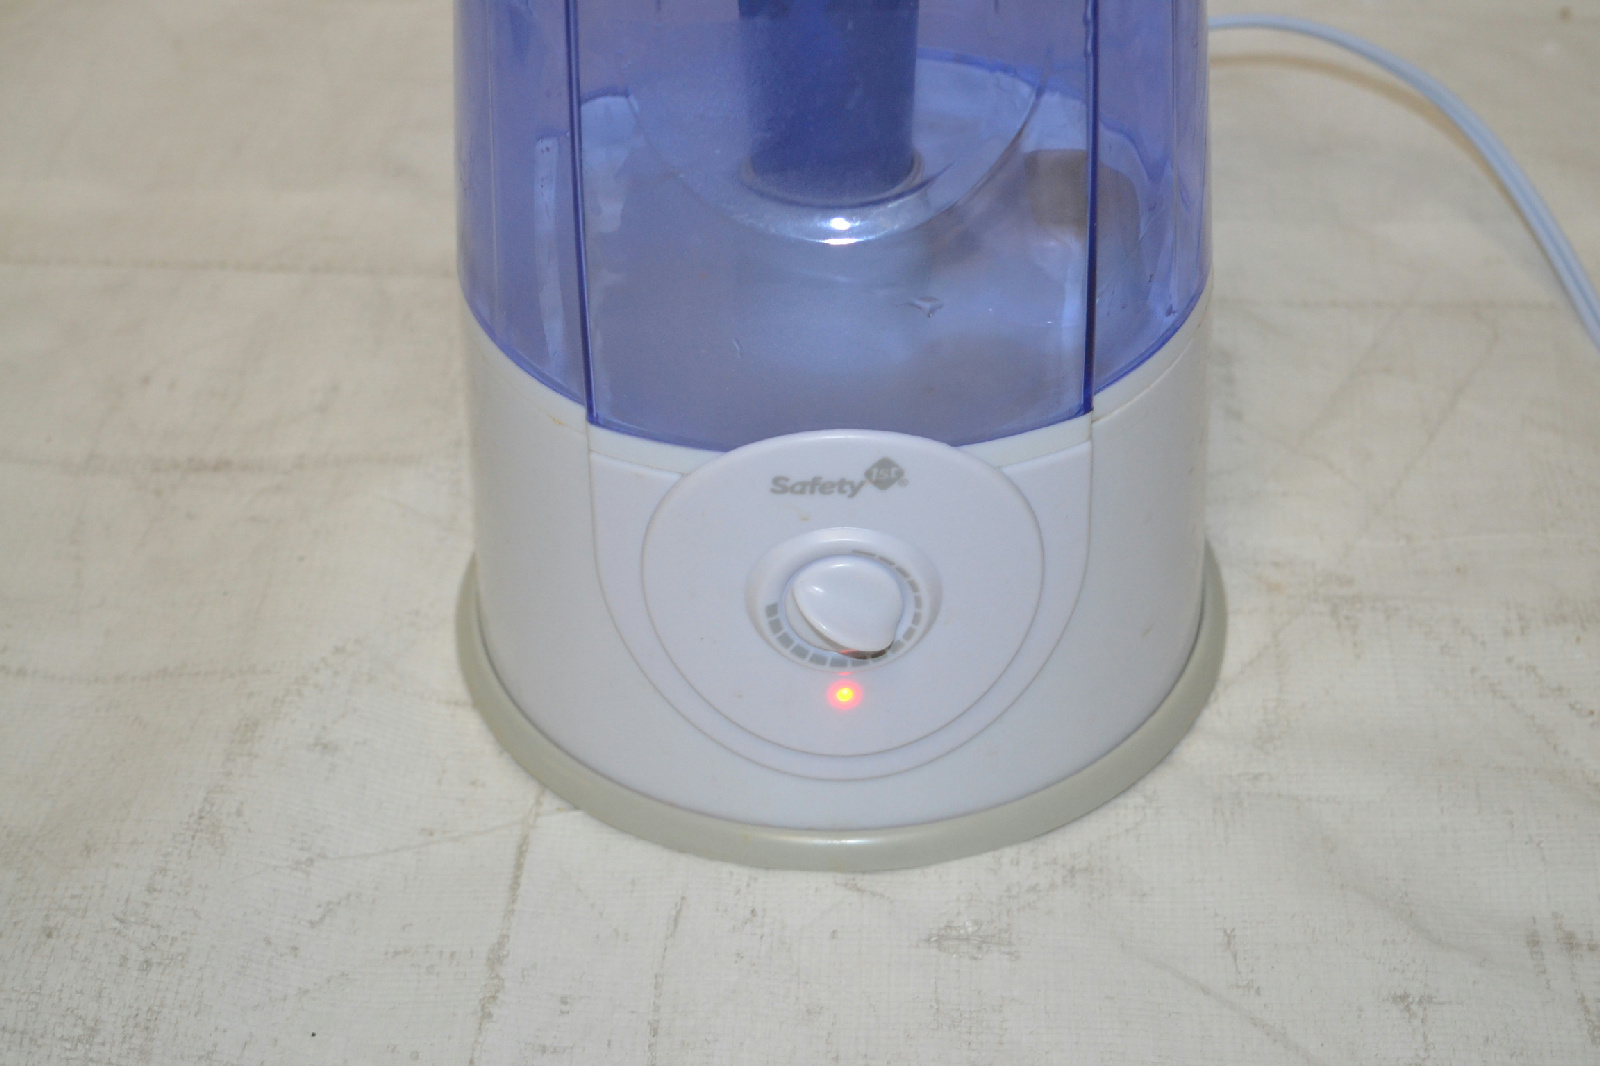 Details about Safety 1st Ultrasonic 360 Humidifier Blue #3F4F8C